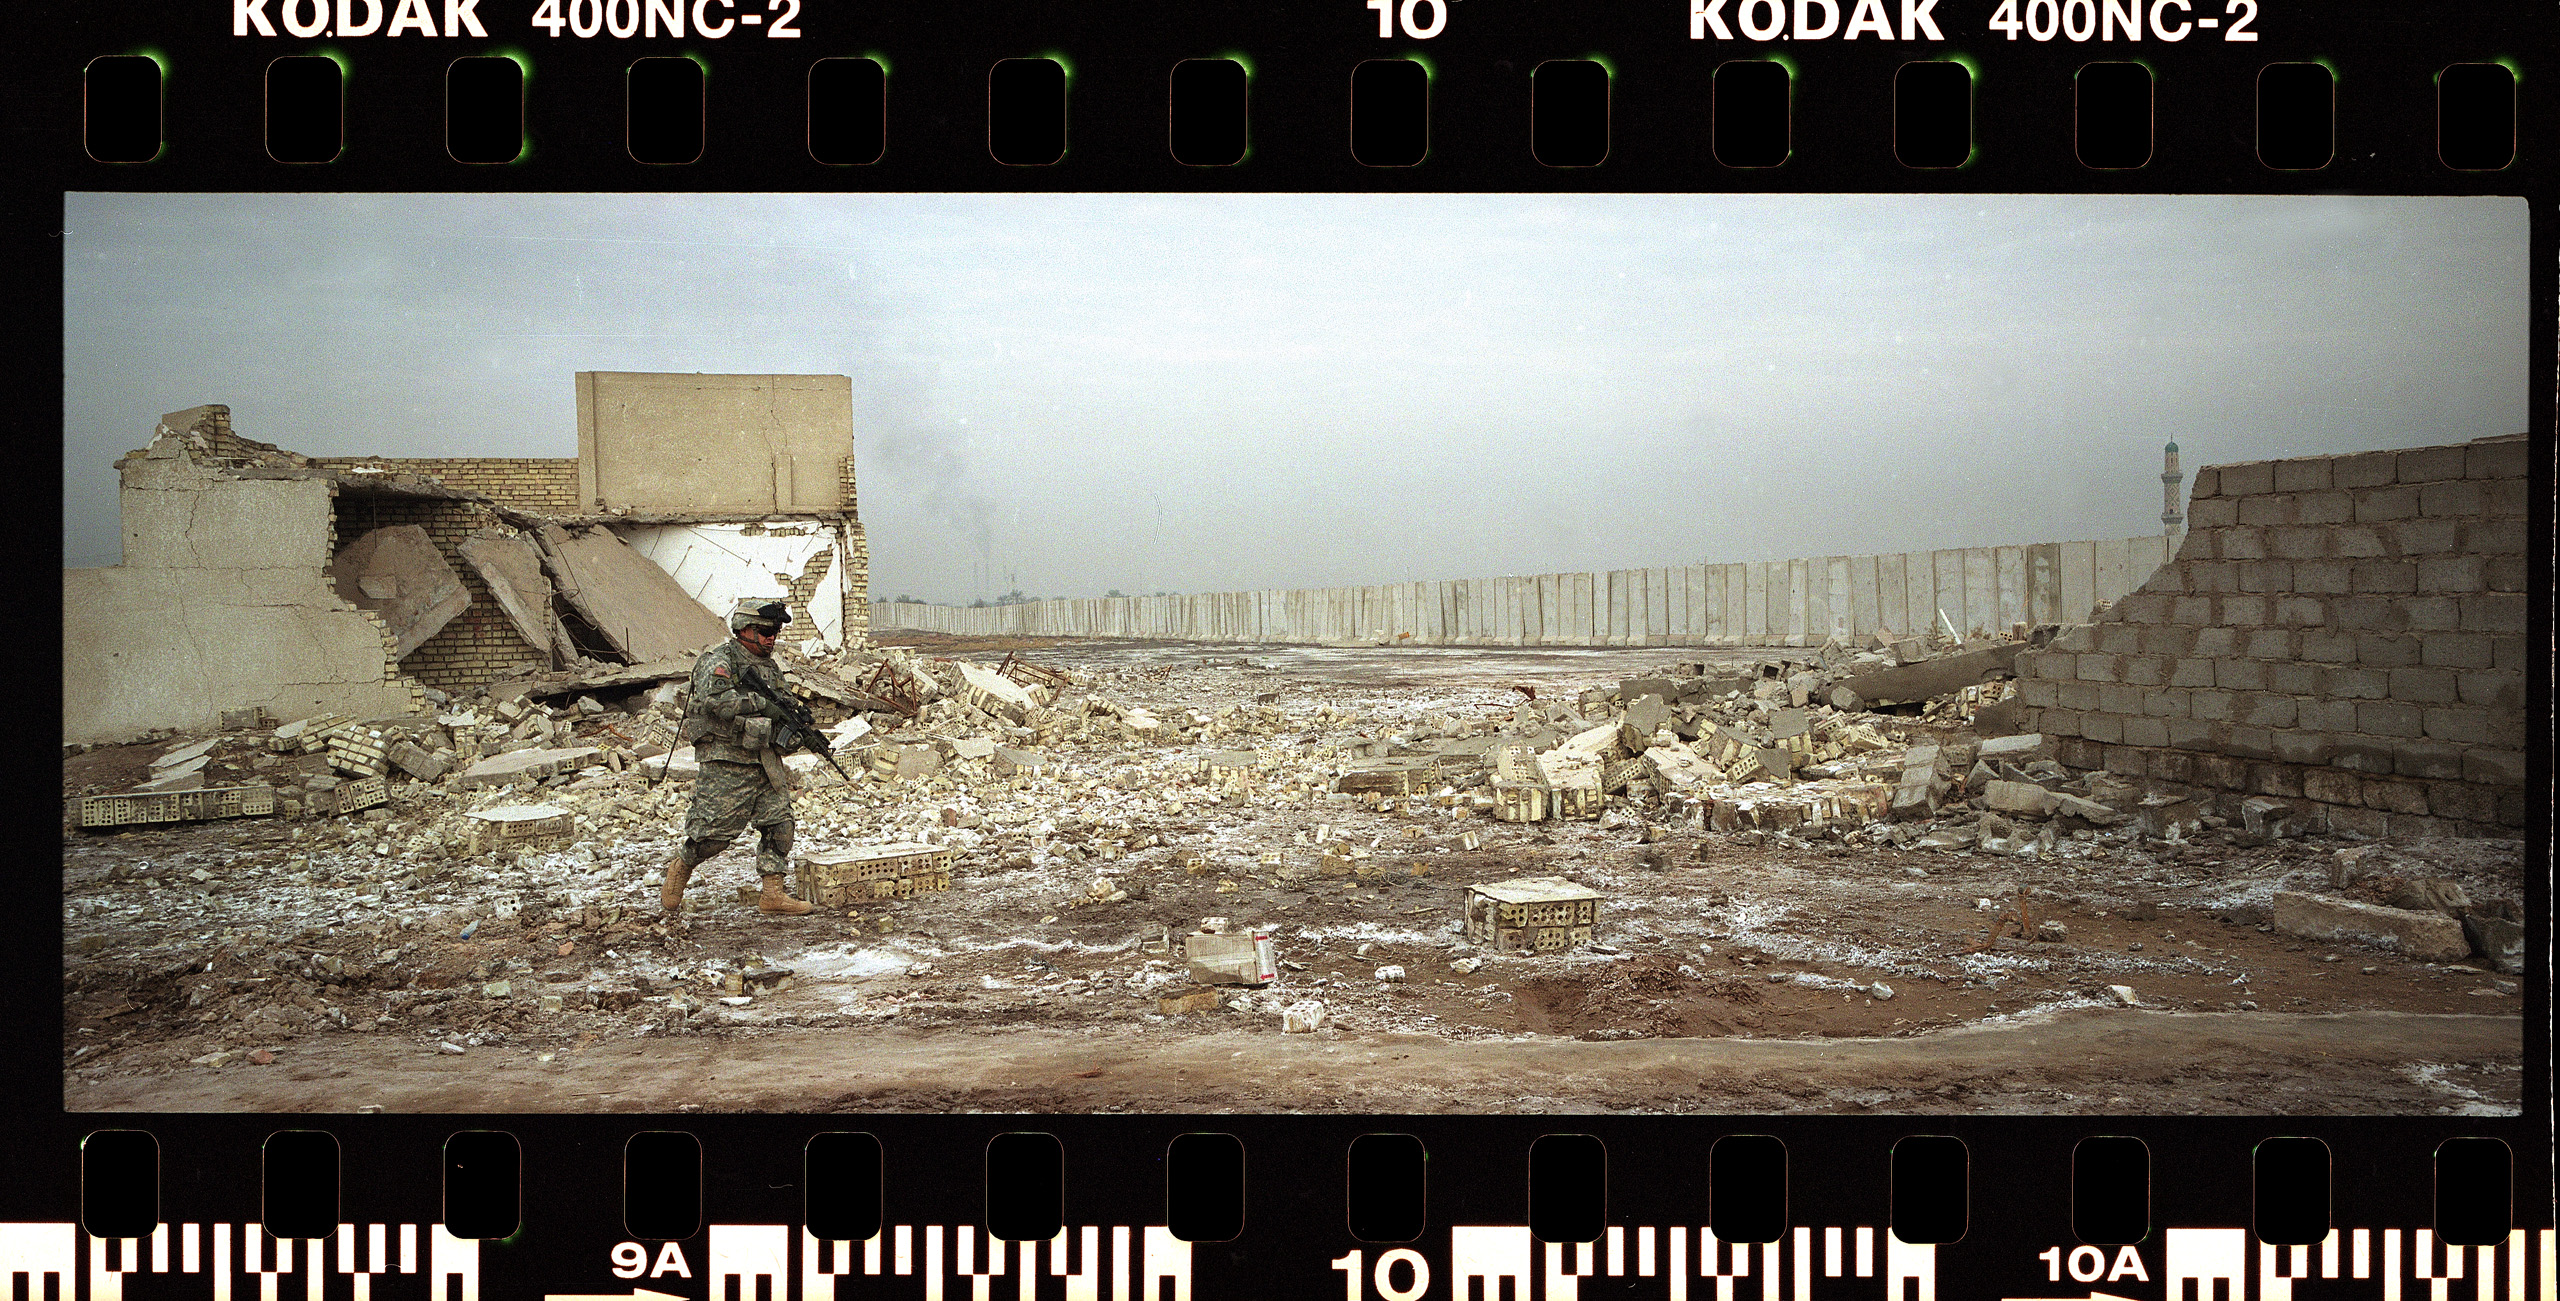 Southern Baghdad in 2008. Kozyrev was shooting with different cameras and film.